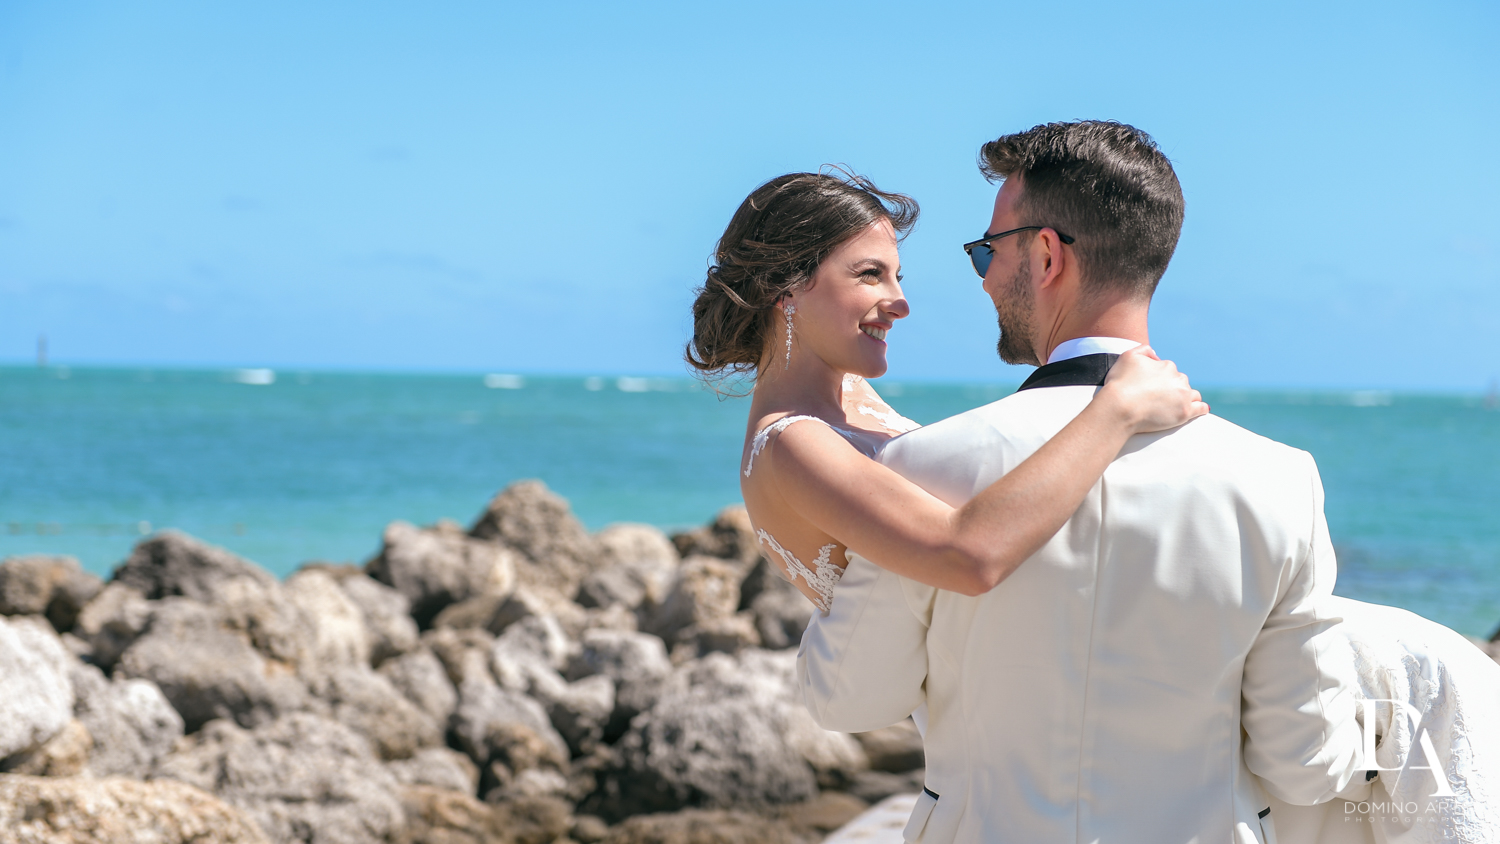 ocean portraits brude and groom at Tropical Garden Wedding at Fisher Island Miami by Domino Arts Photography